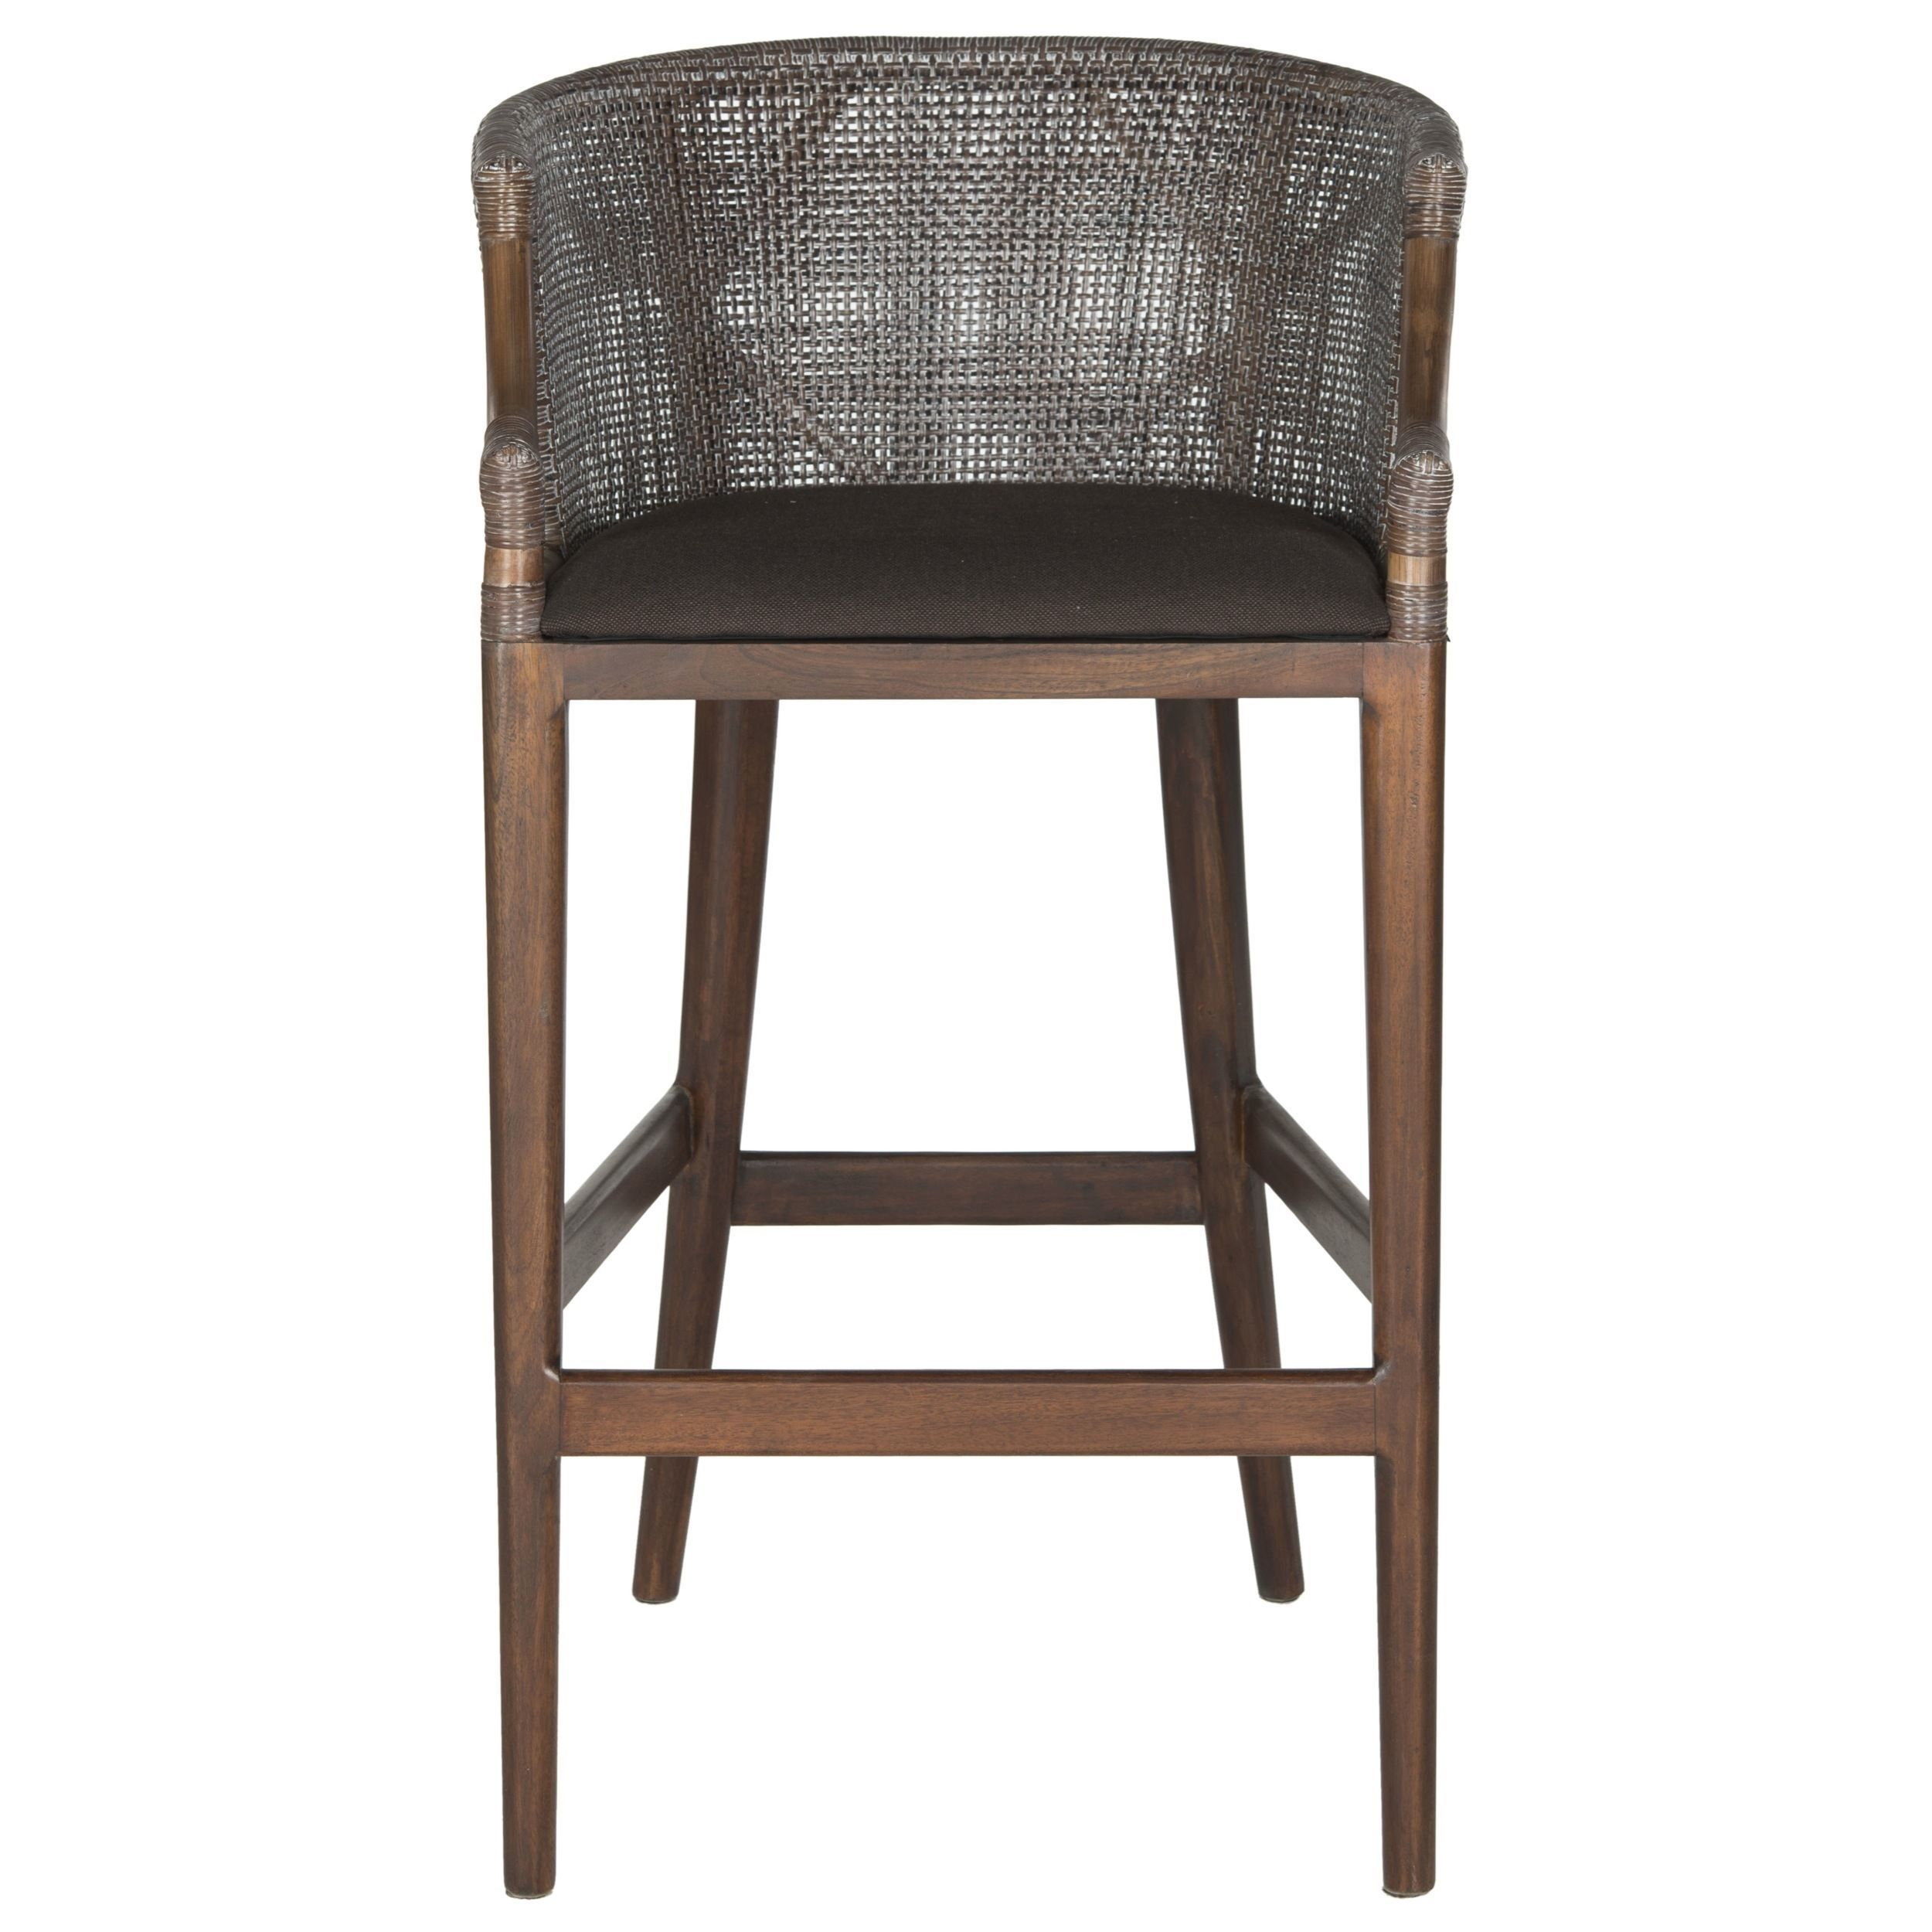 Prime Safavieh Brando Brown 28 Inch Bar Stool Overstock Com Pdpeps Interior Chair Design Pdpepsorg